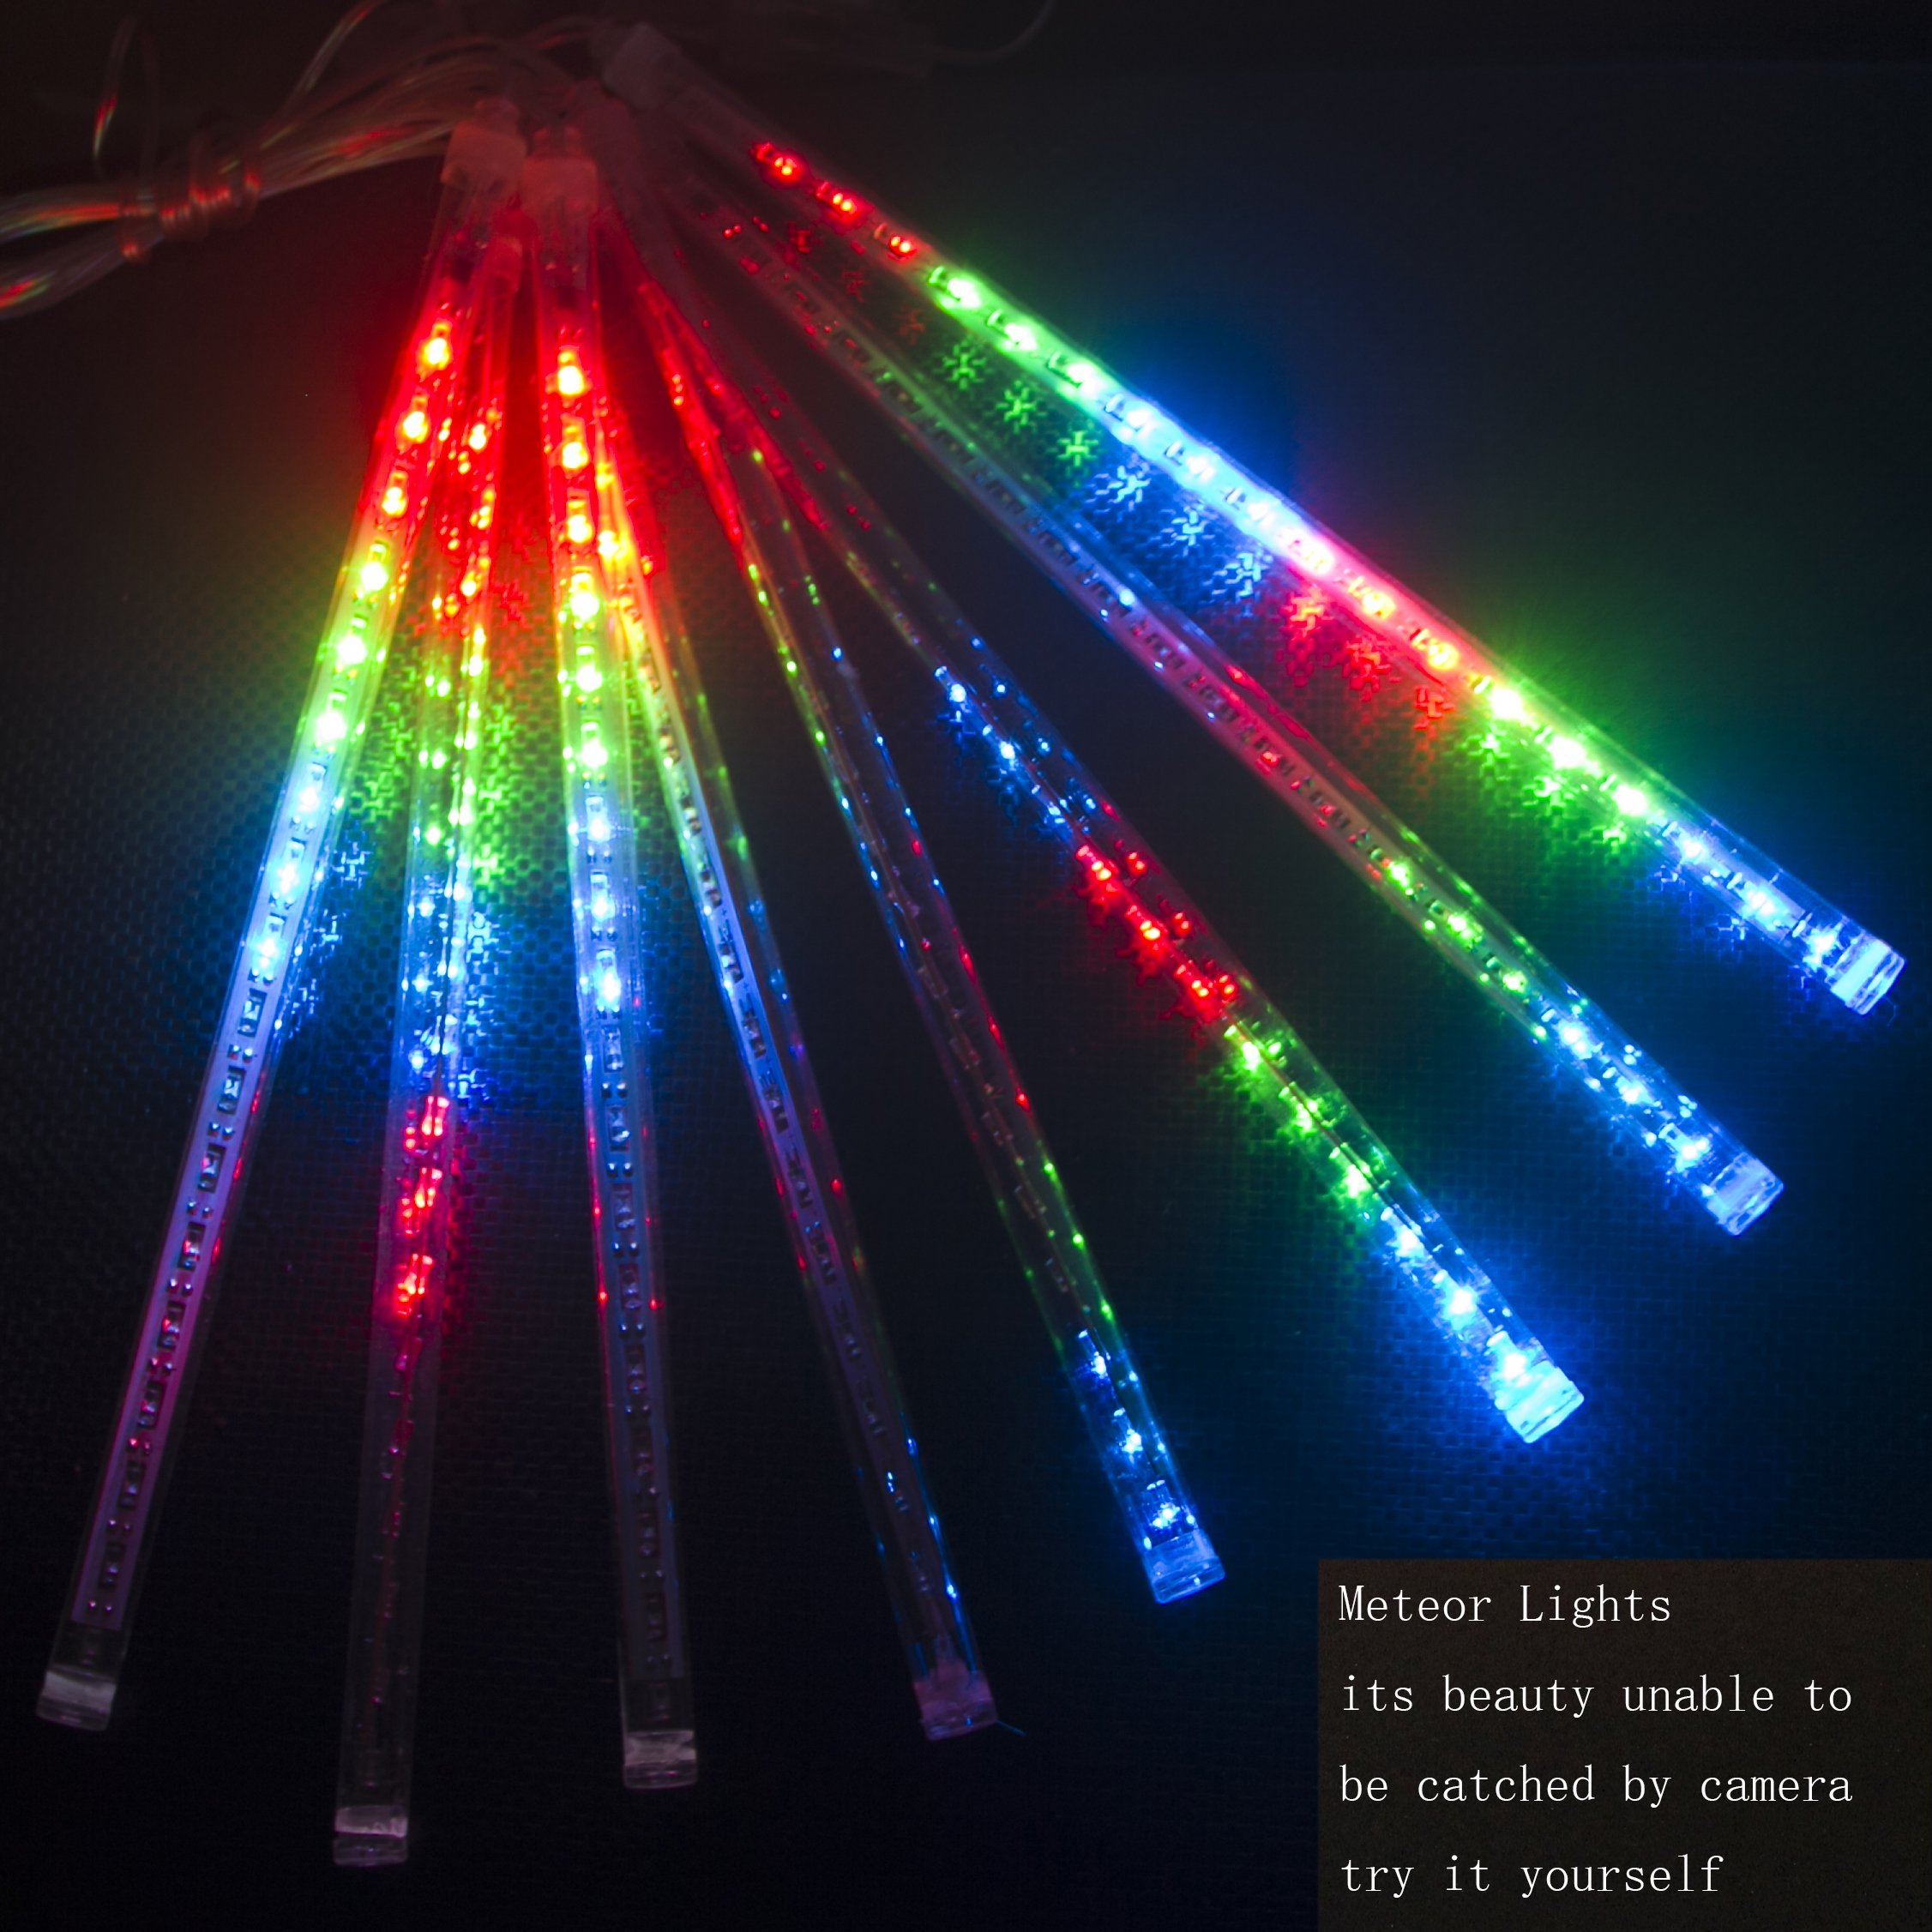 CDL 10sets Meteor Icicle Snow Falling Rain Drop 50cm 8 Tubes 240 LED Shower Christmas Raindrop Cascading Lights for Wedding Party Holiday Xmas Halloween Home Garden Tree Decoration (10, Multi-colors) by CDL-METEOR LIGHTS